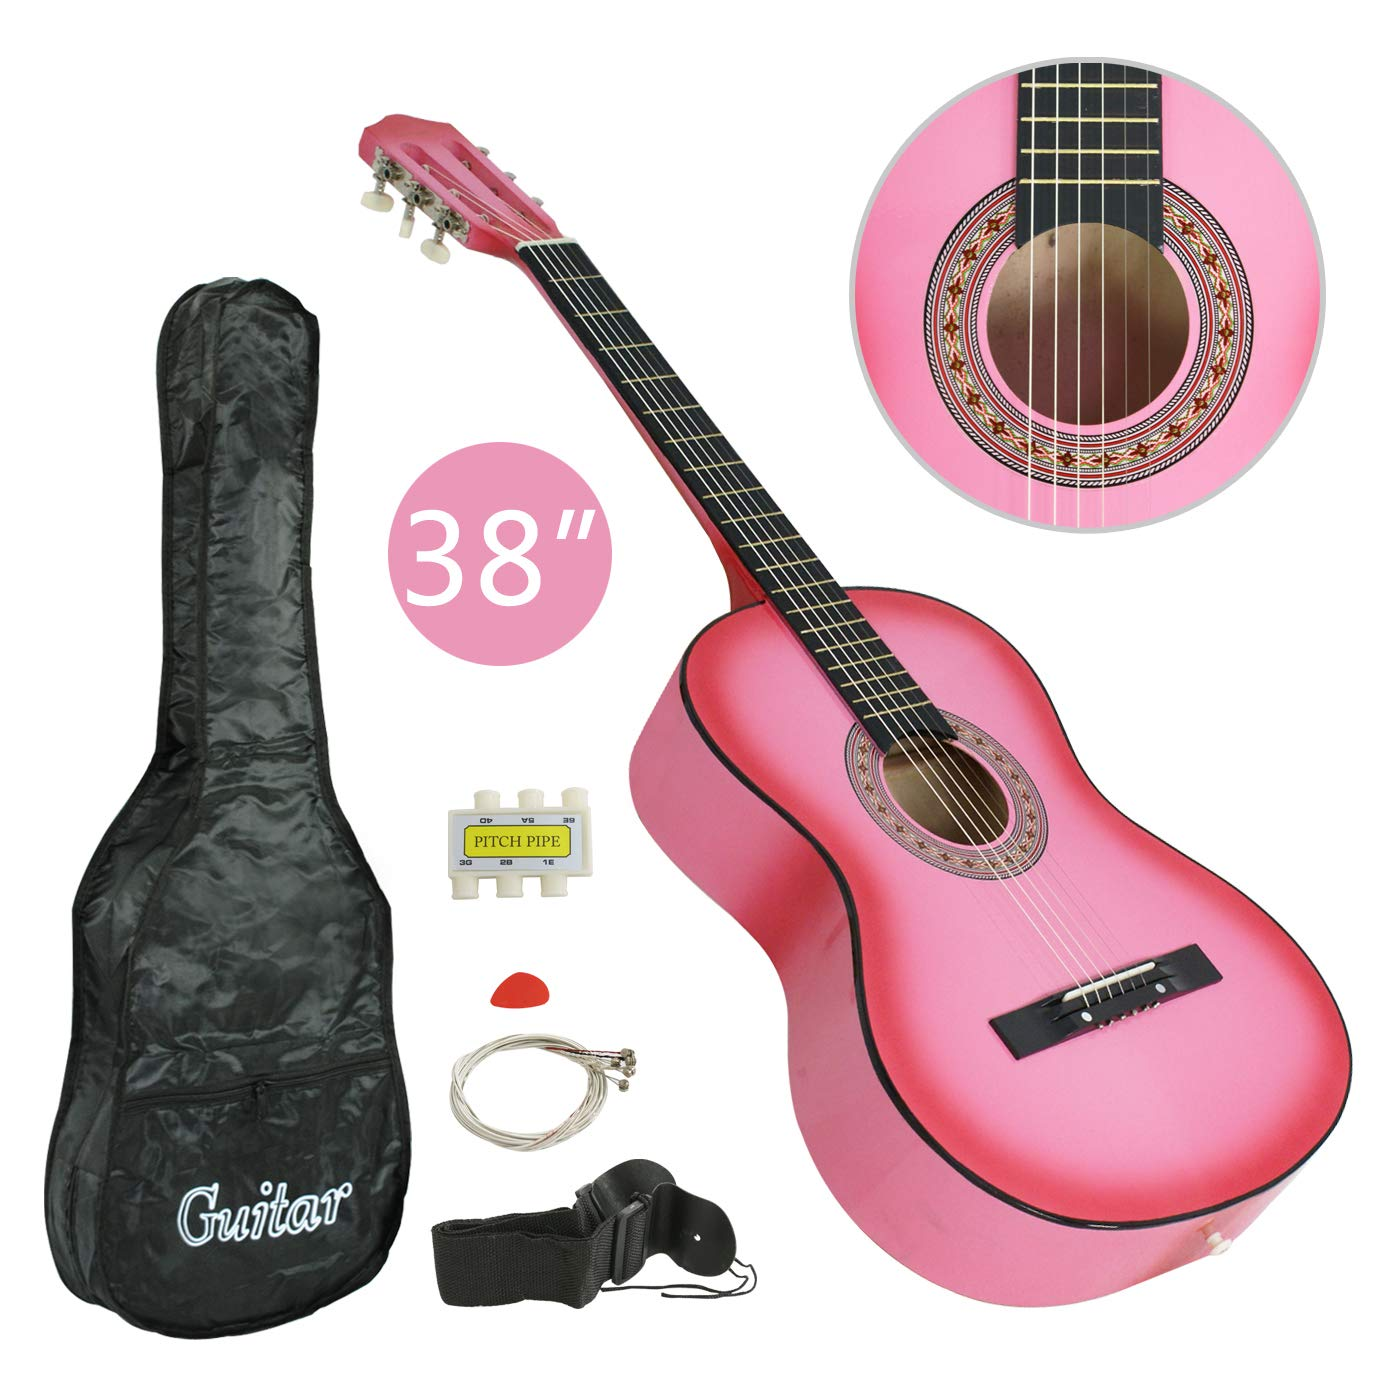 "LEMY 38"" Acoustic Guitar Beginner Set with Strap, Digital E-Tuner, Pick and Case for Right-handed Starters, Kids, Music Lovers (Pink)"